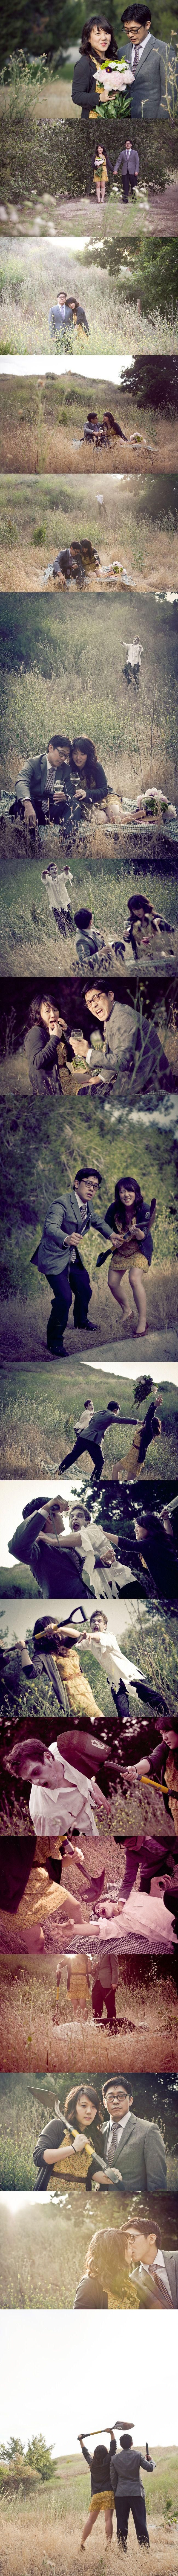 Engagement pictures/ zombies lol